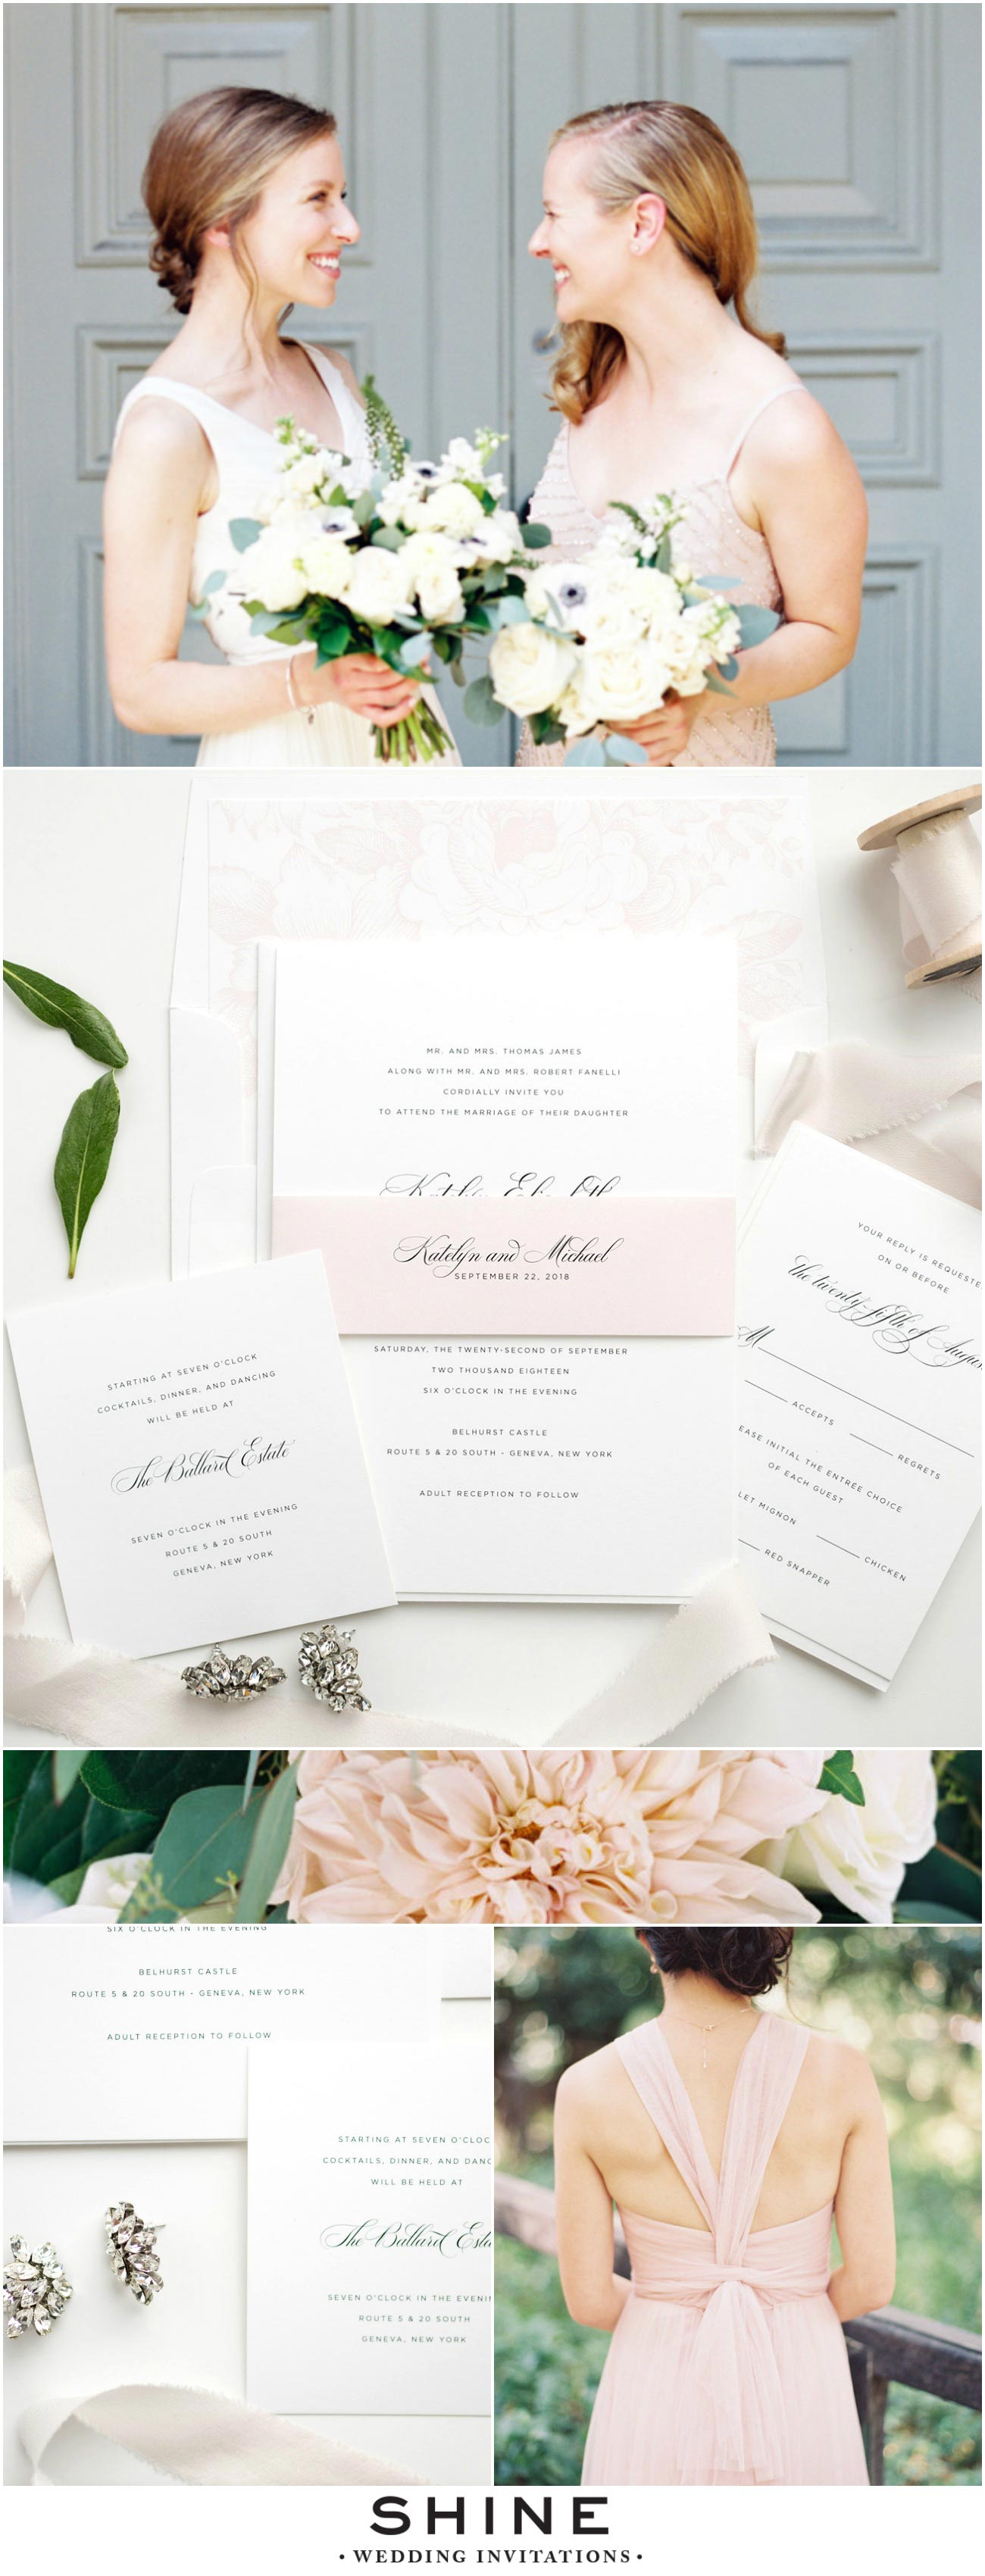 Elegant Blush Wedding Inspiration Mood Board